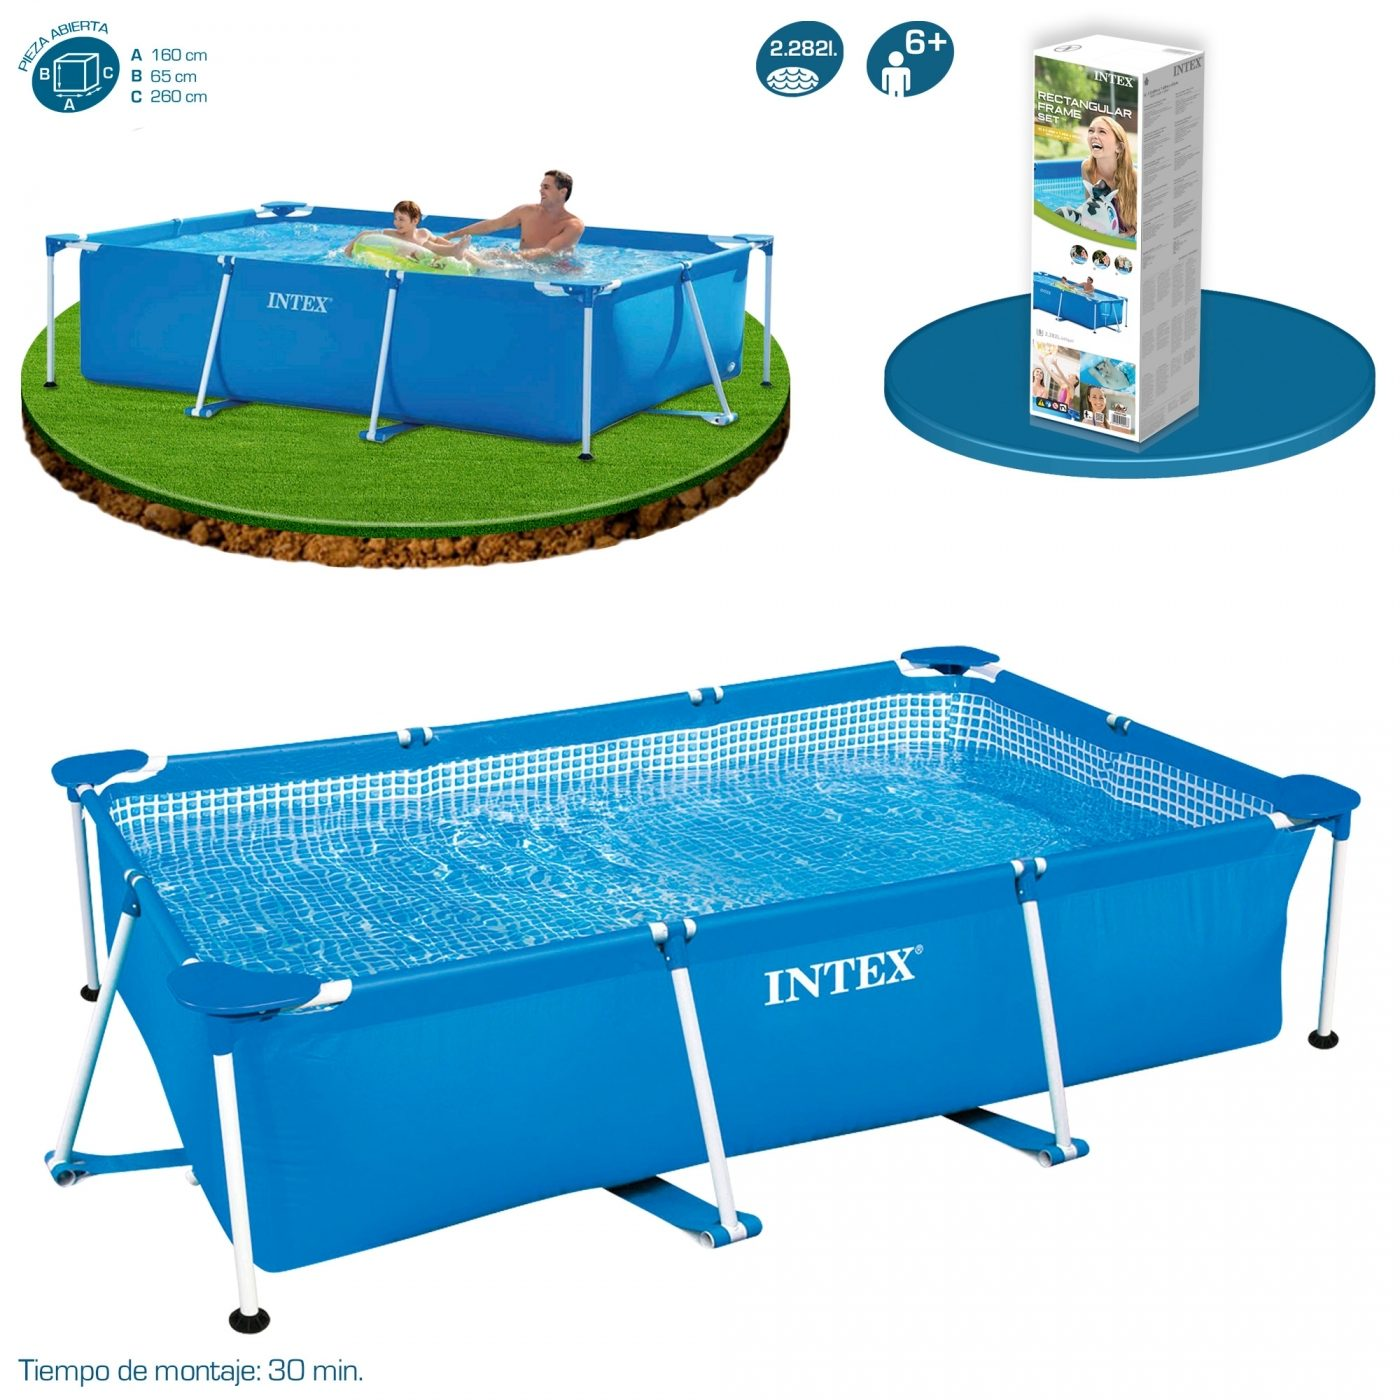 Piscinas Intex Site Piscina Small Frame 260 X 160 X 65 Cm Intex Em Planeta Huerto